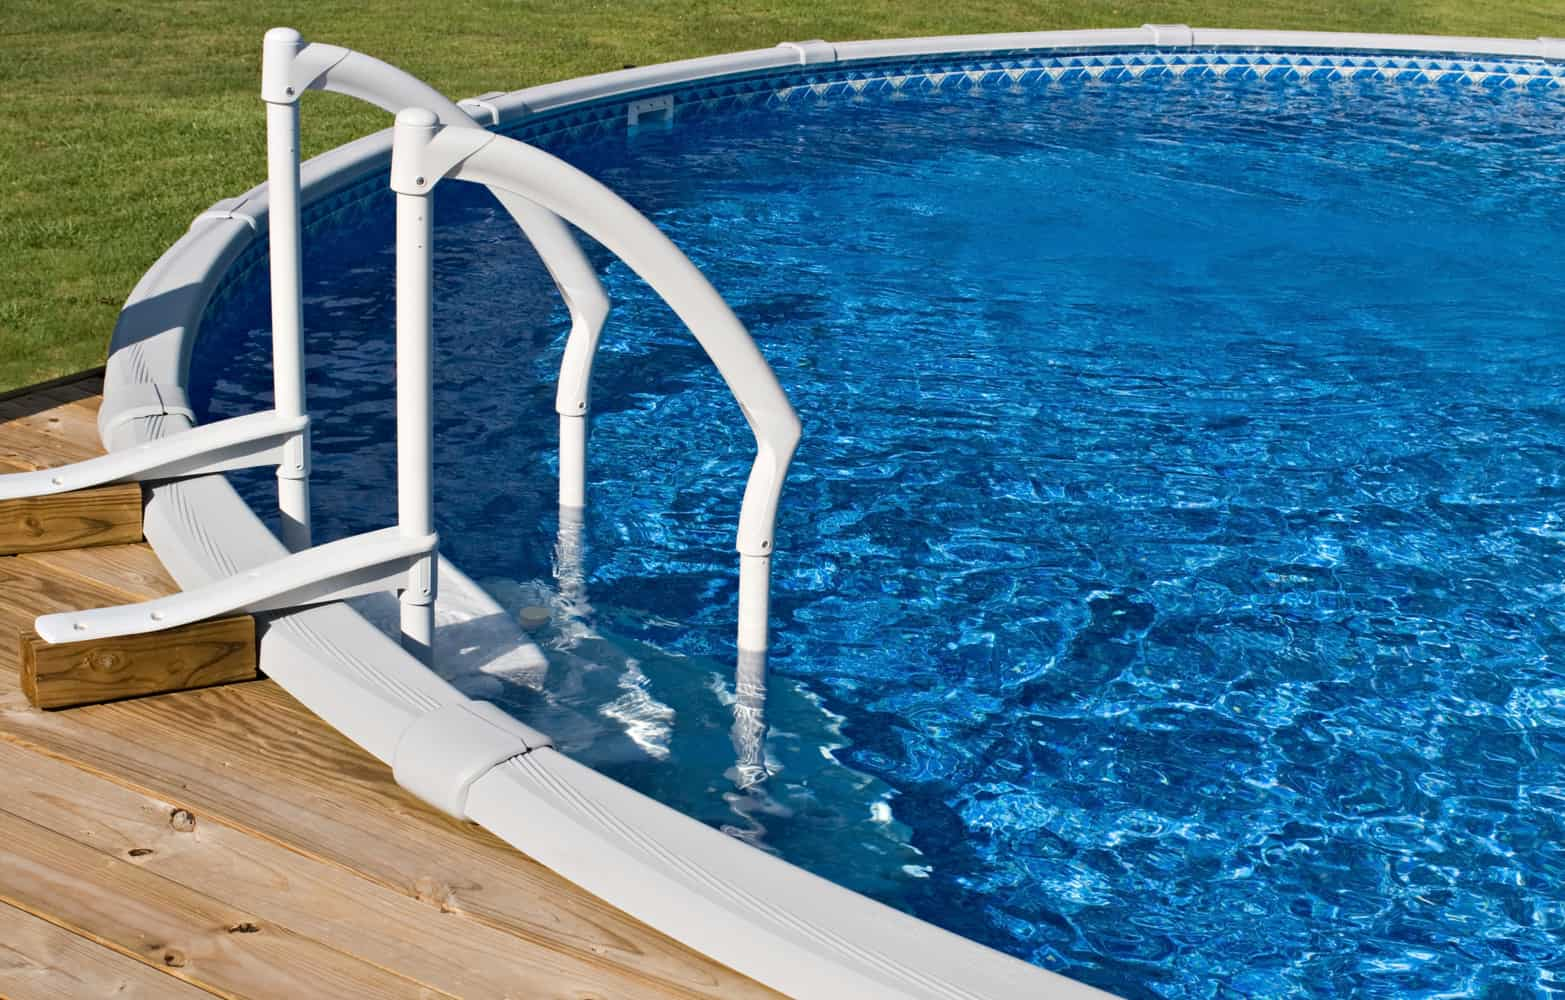 Best Above Ground Pool Ladders/Steps: A Review & Buying Guide for 2019